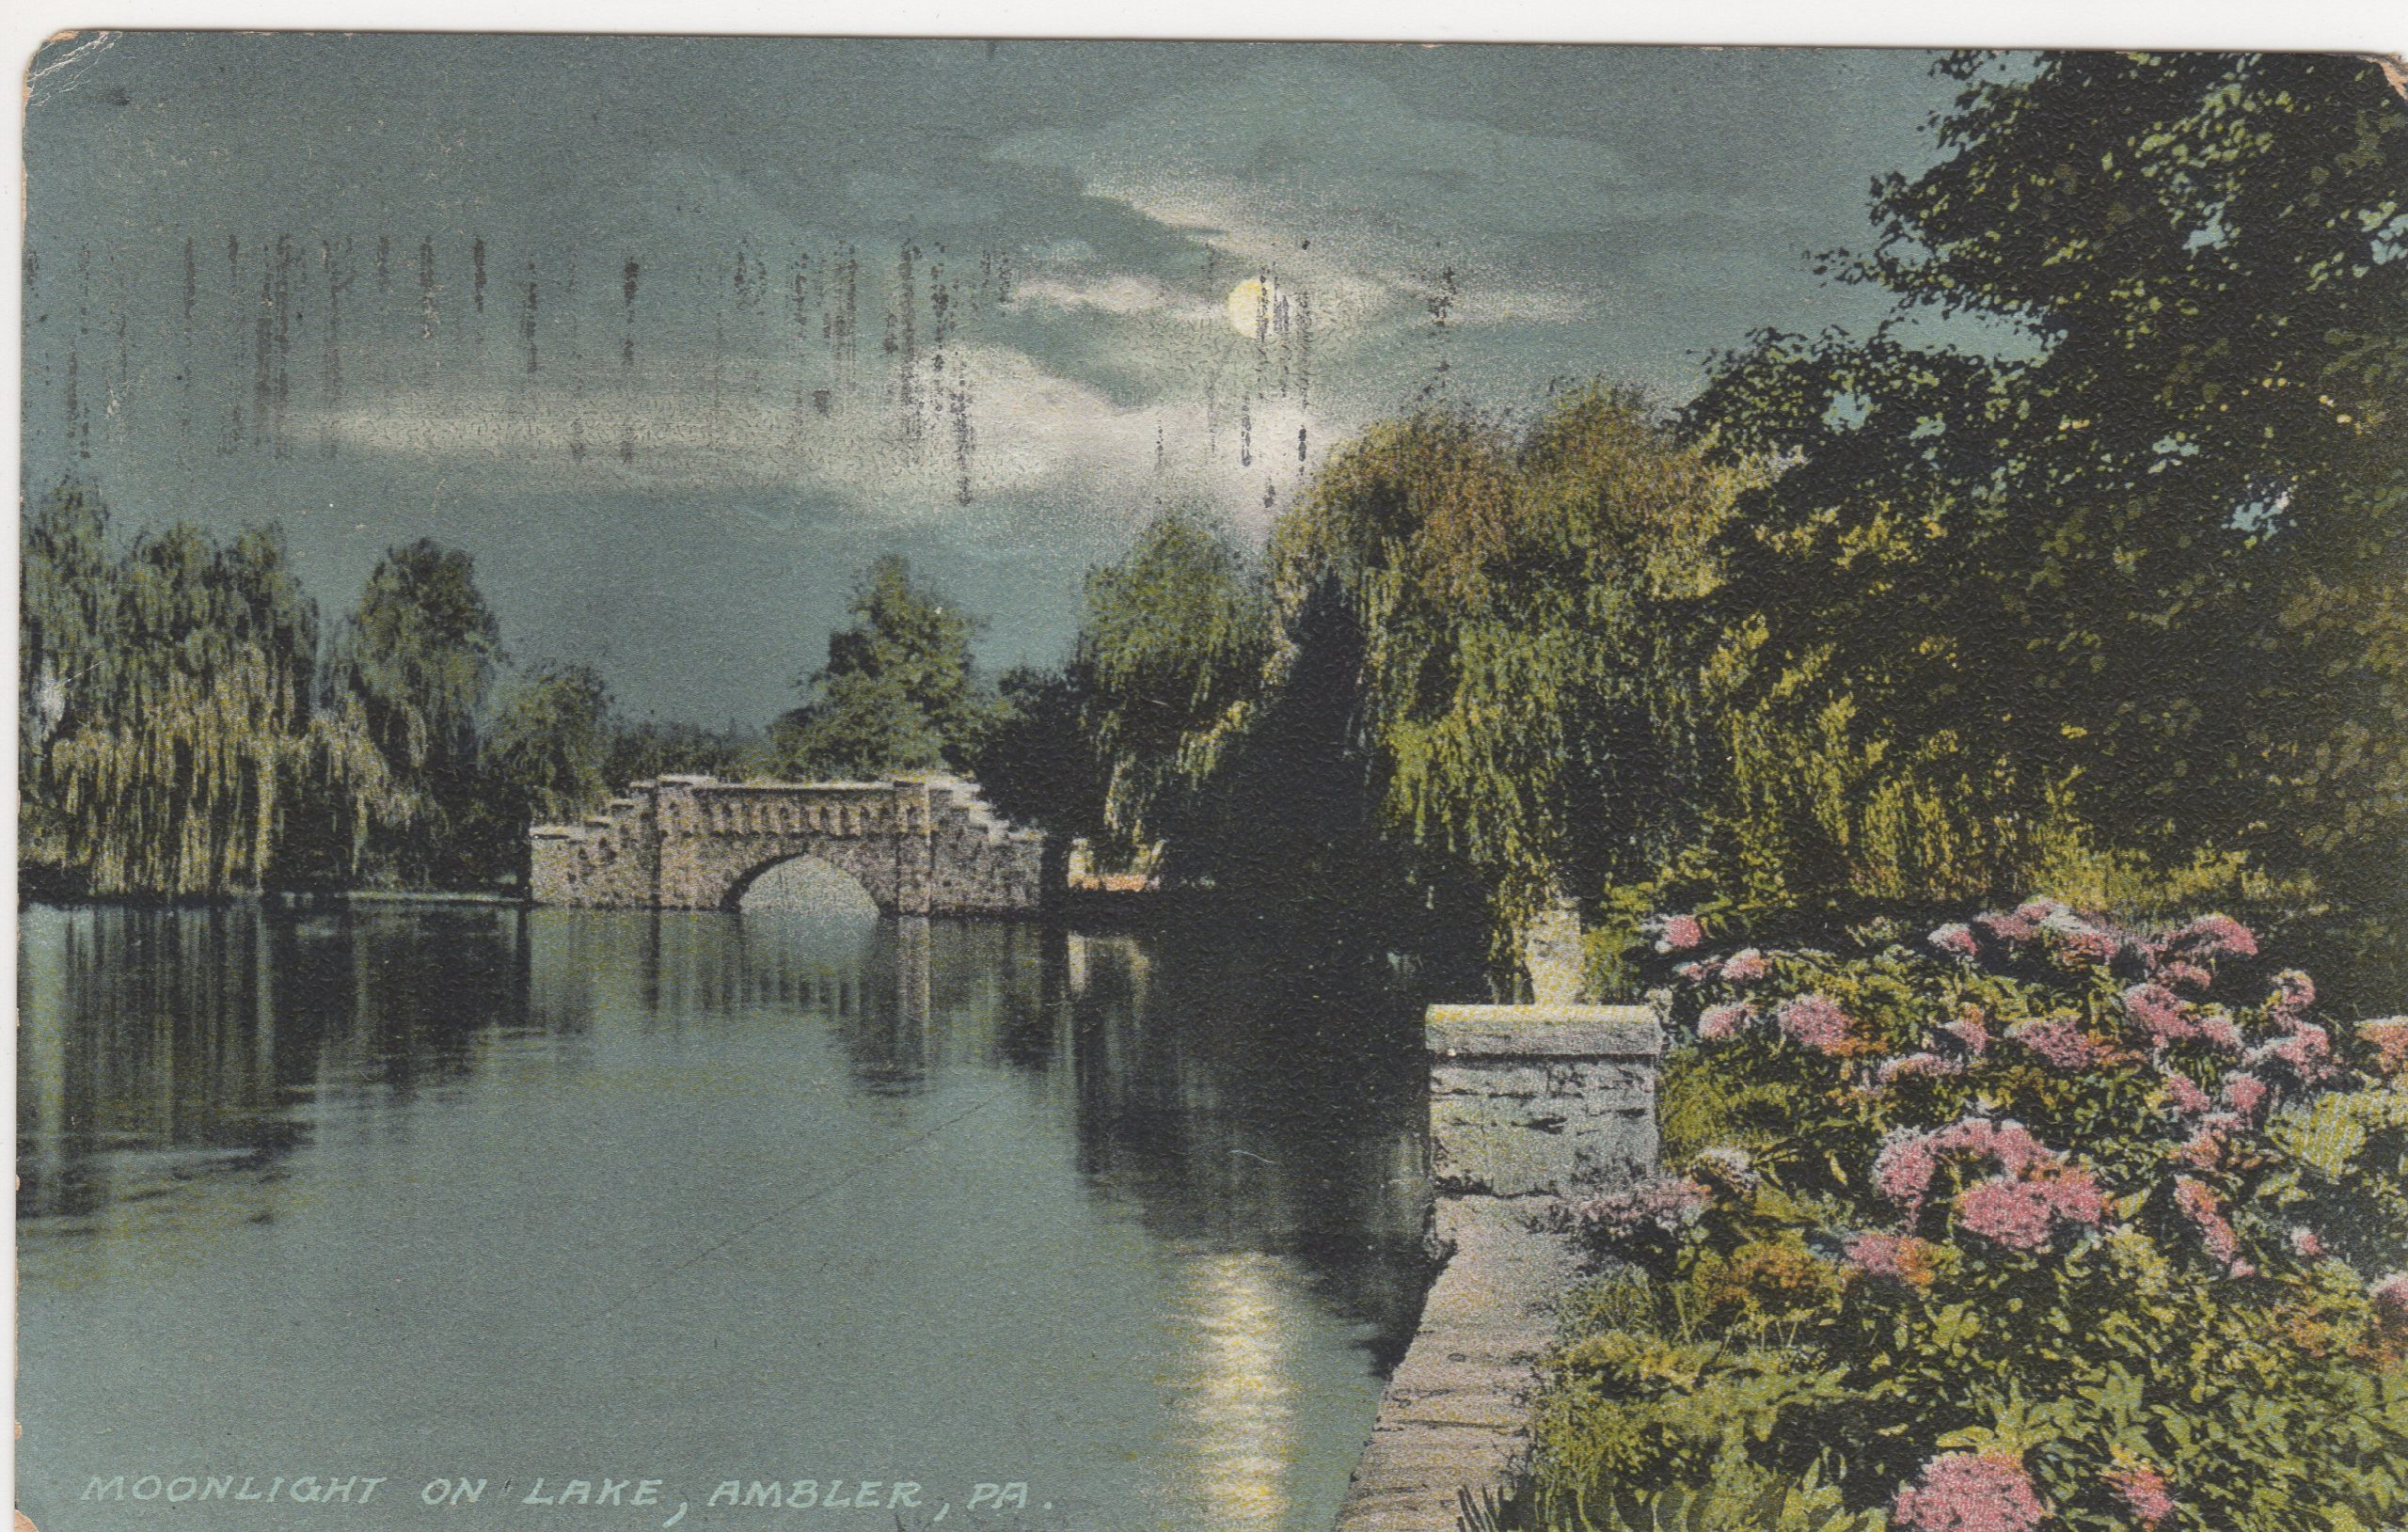 4125.104 Ambler Pa Postcard_Moonlight on Lake (Loch Linden)_circa 1910